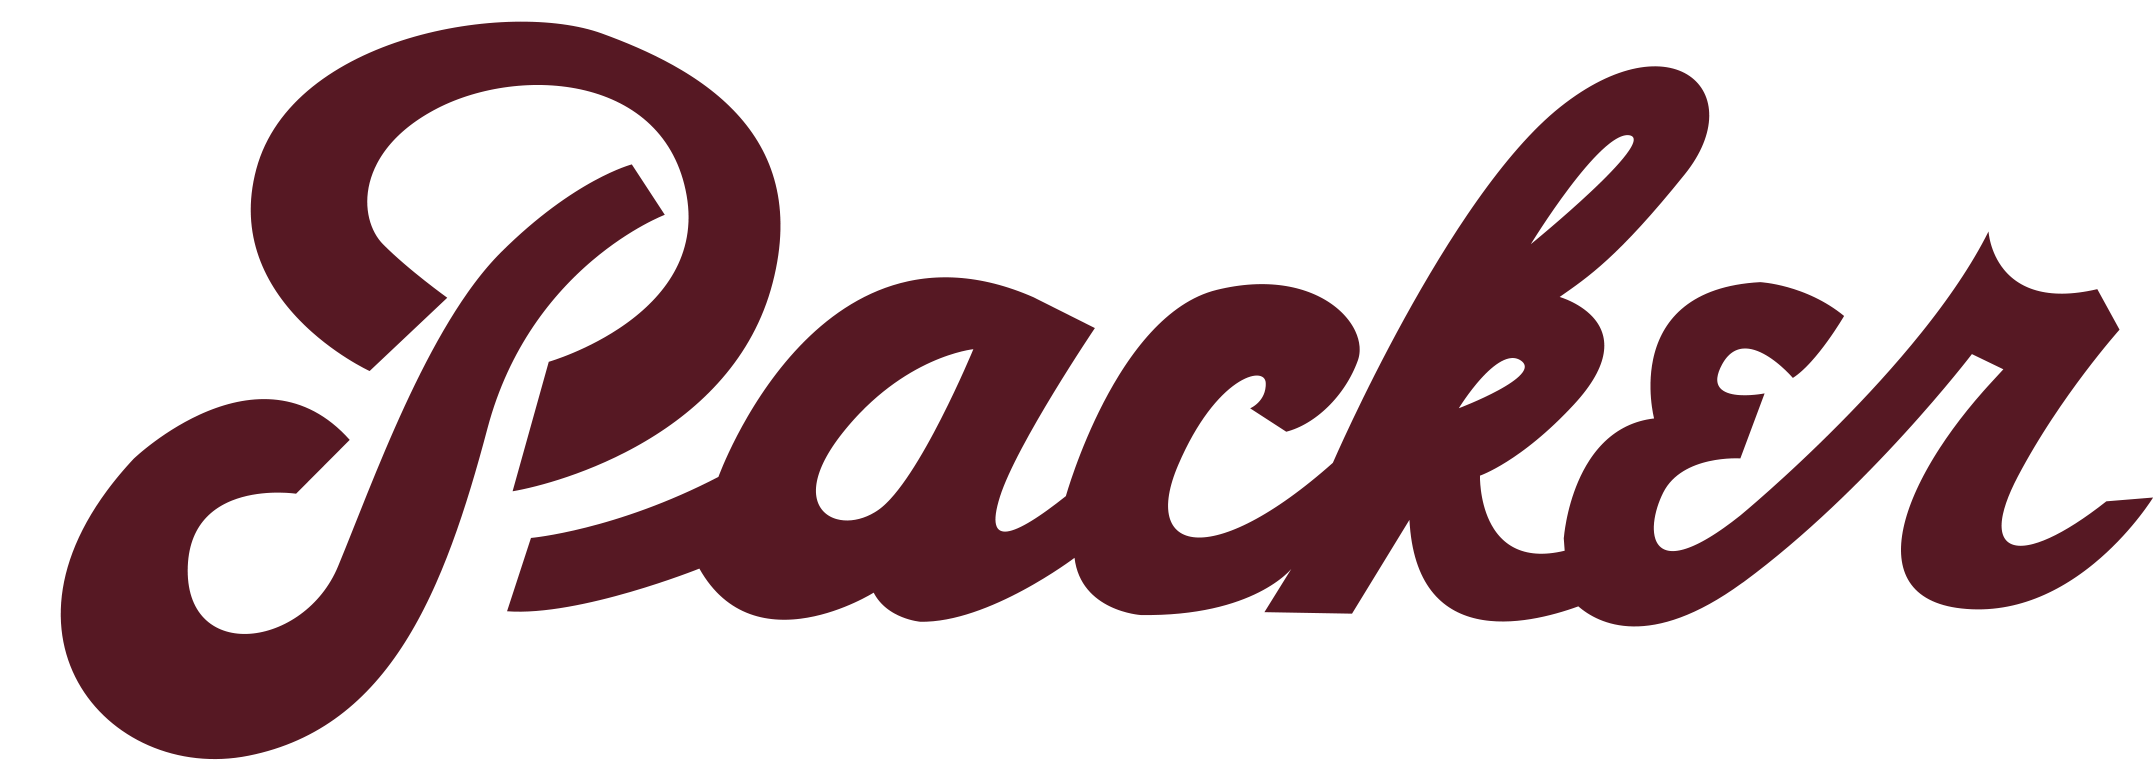 packer-logo-burgundy